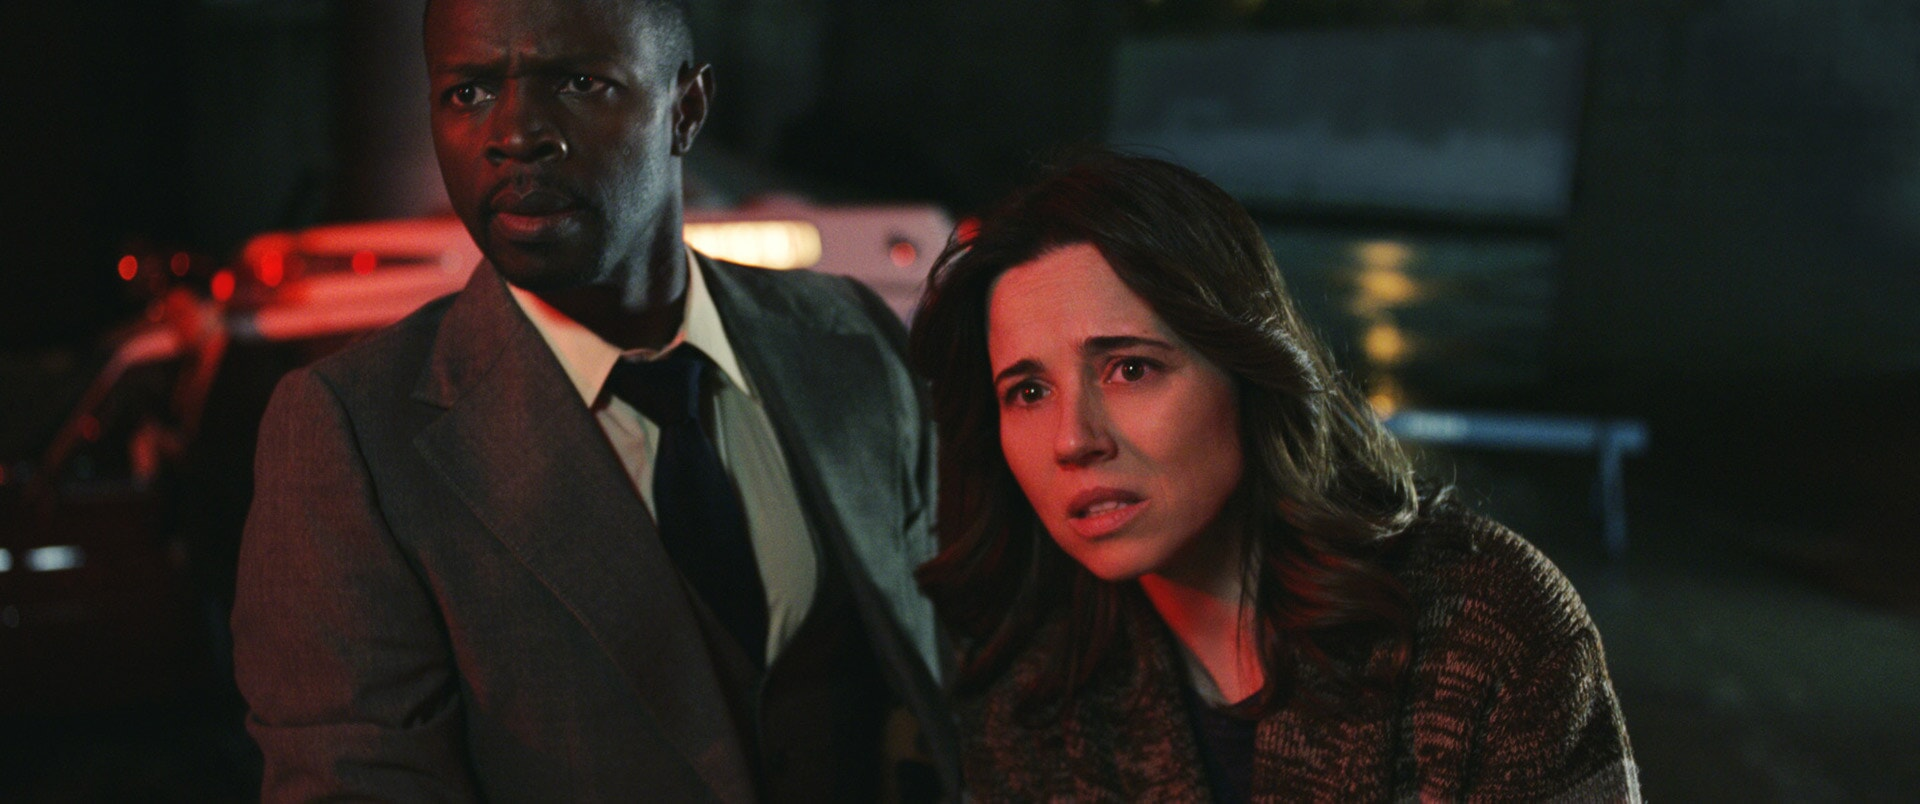 (L-R) SEAN PATRICK THOMAS as Detective Cooper and LINDA CARDELLINI as Anna Tate-Garcia